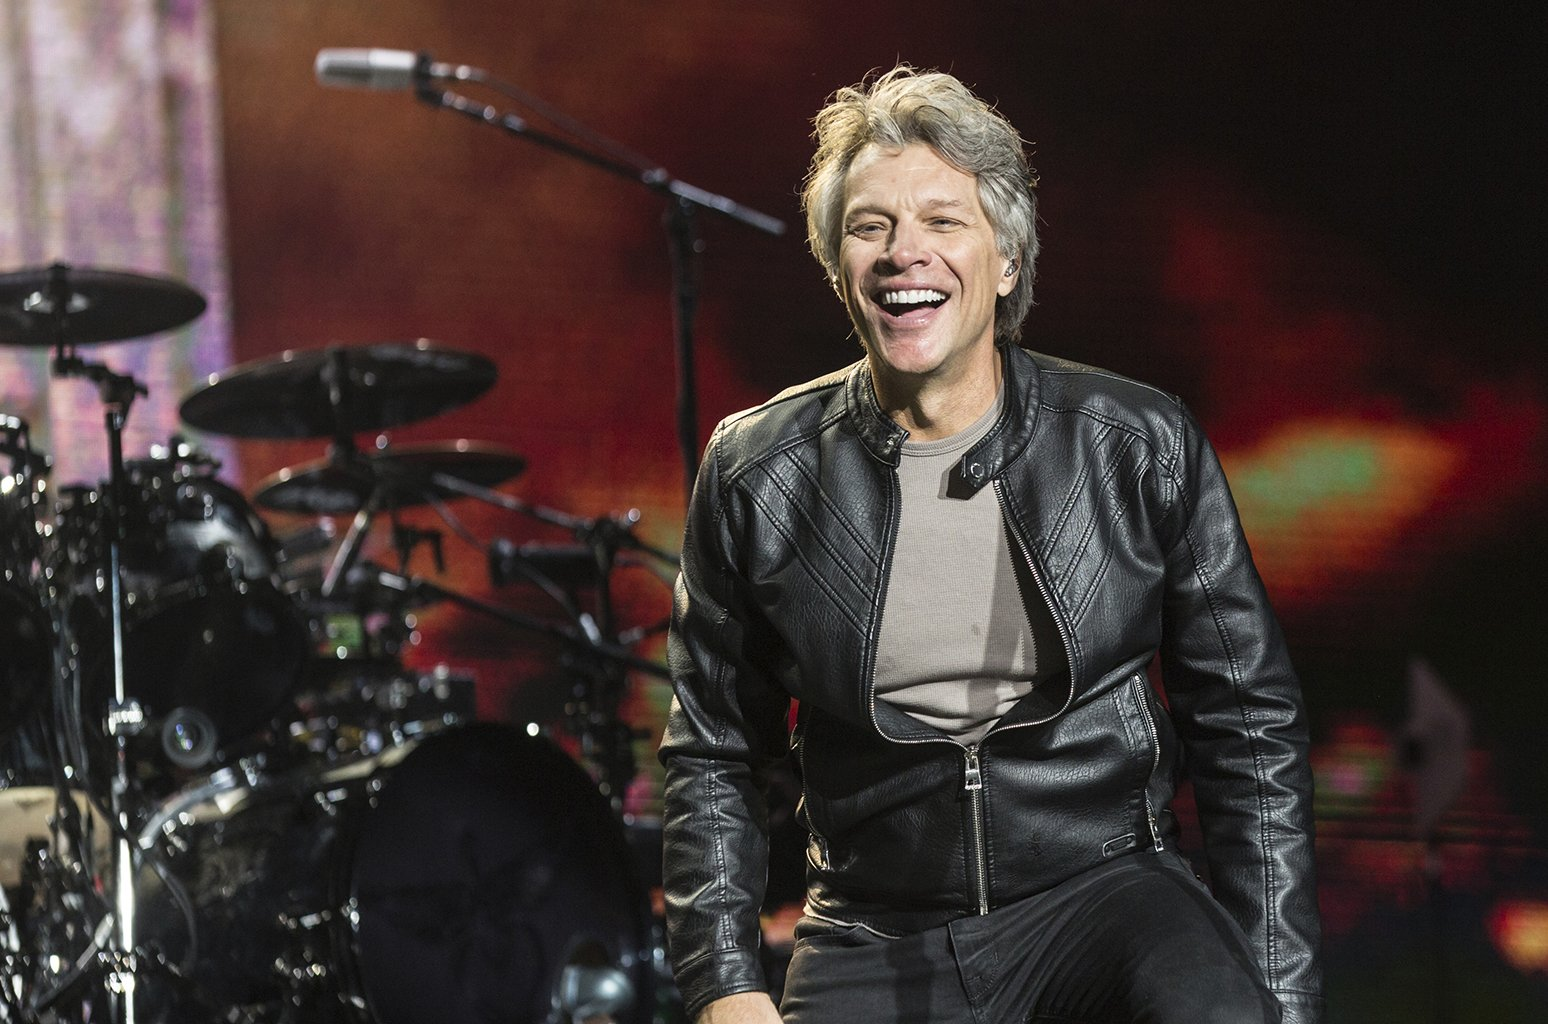 Bon Jovi's new single 'When We Were Us' blasts onto the Adult Contemporary chart https://t.co/mdXJcQeyQt https://t.co/gzX0dm9HVH